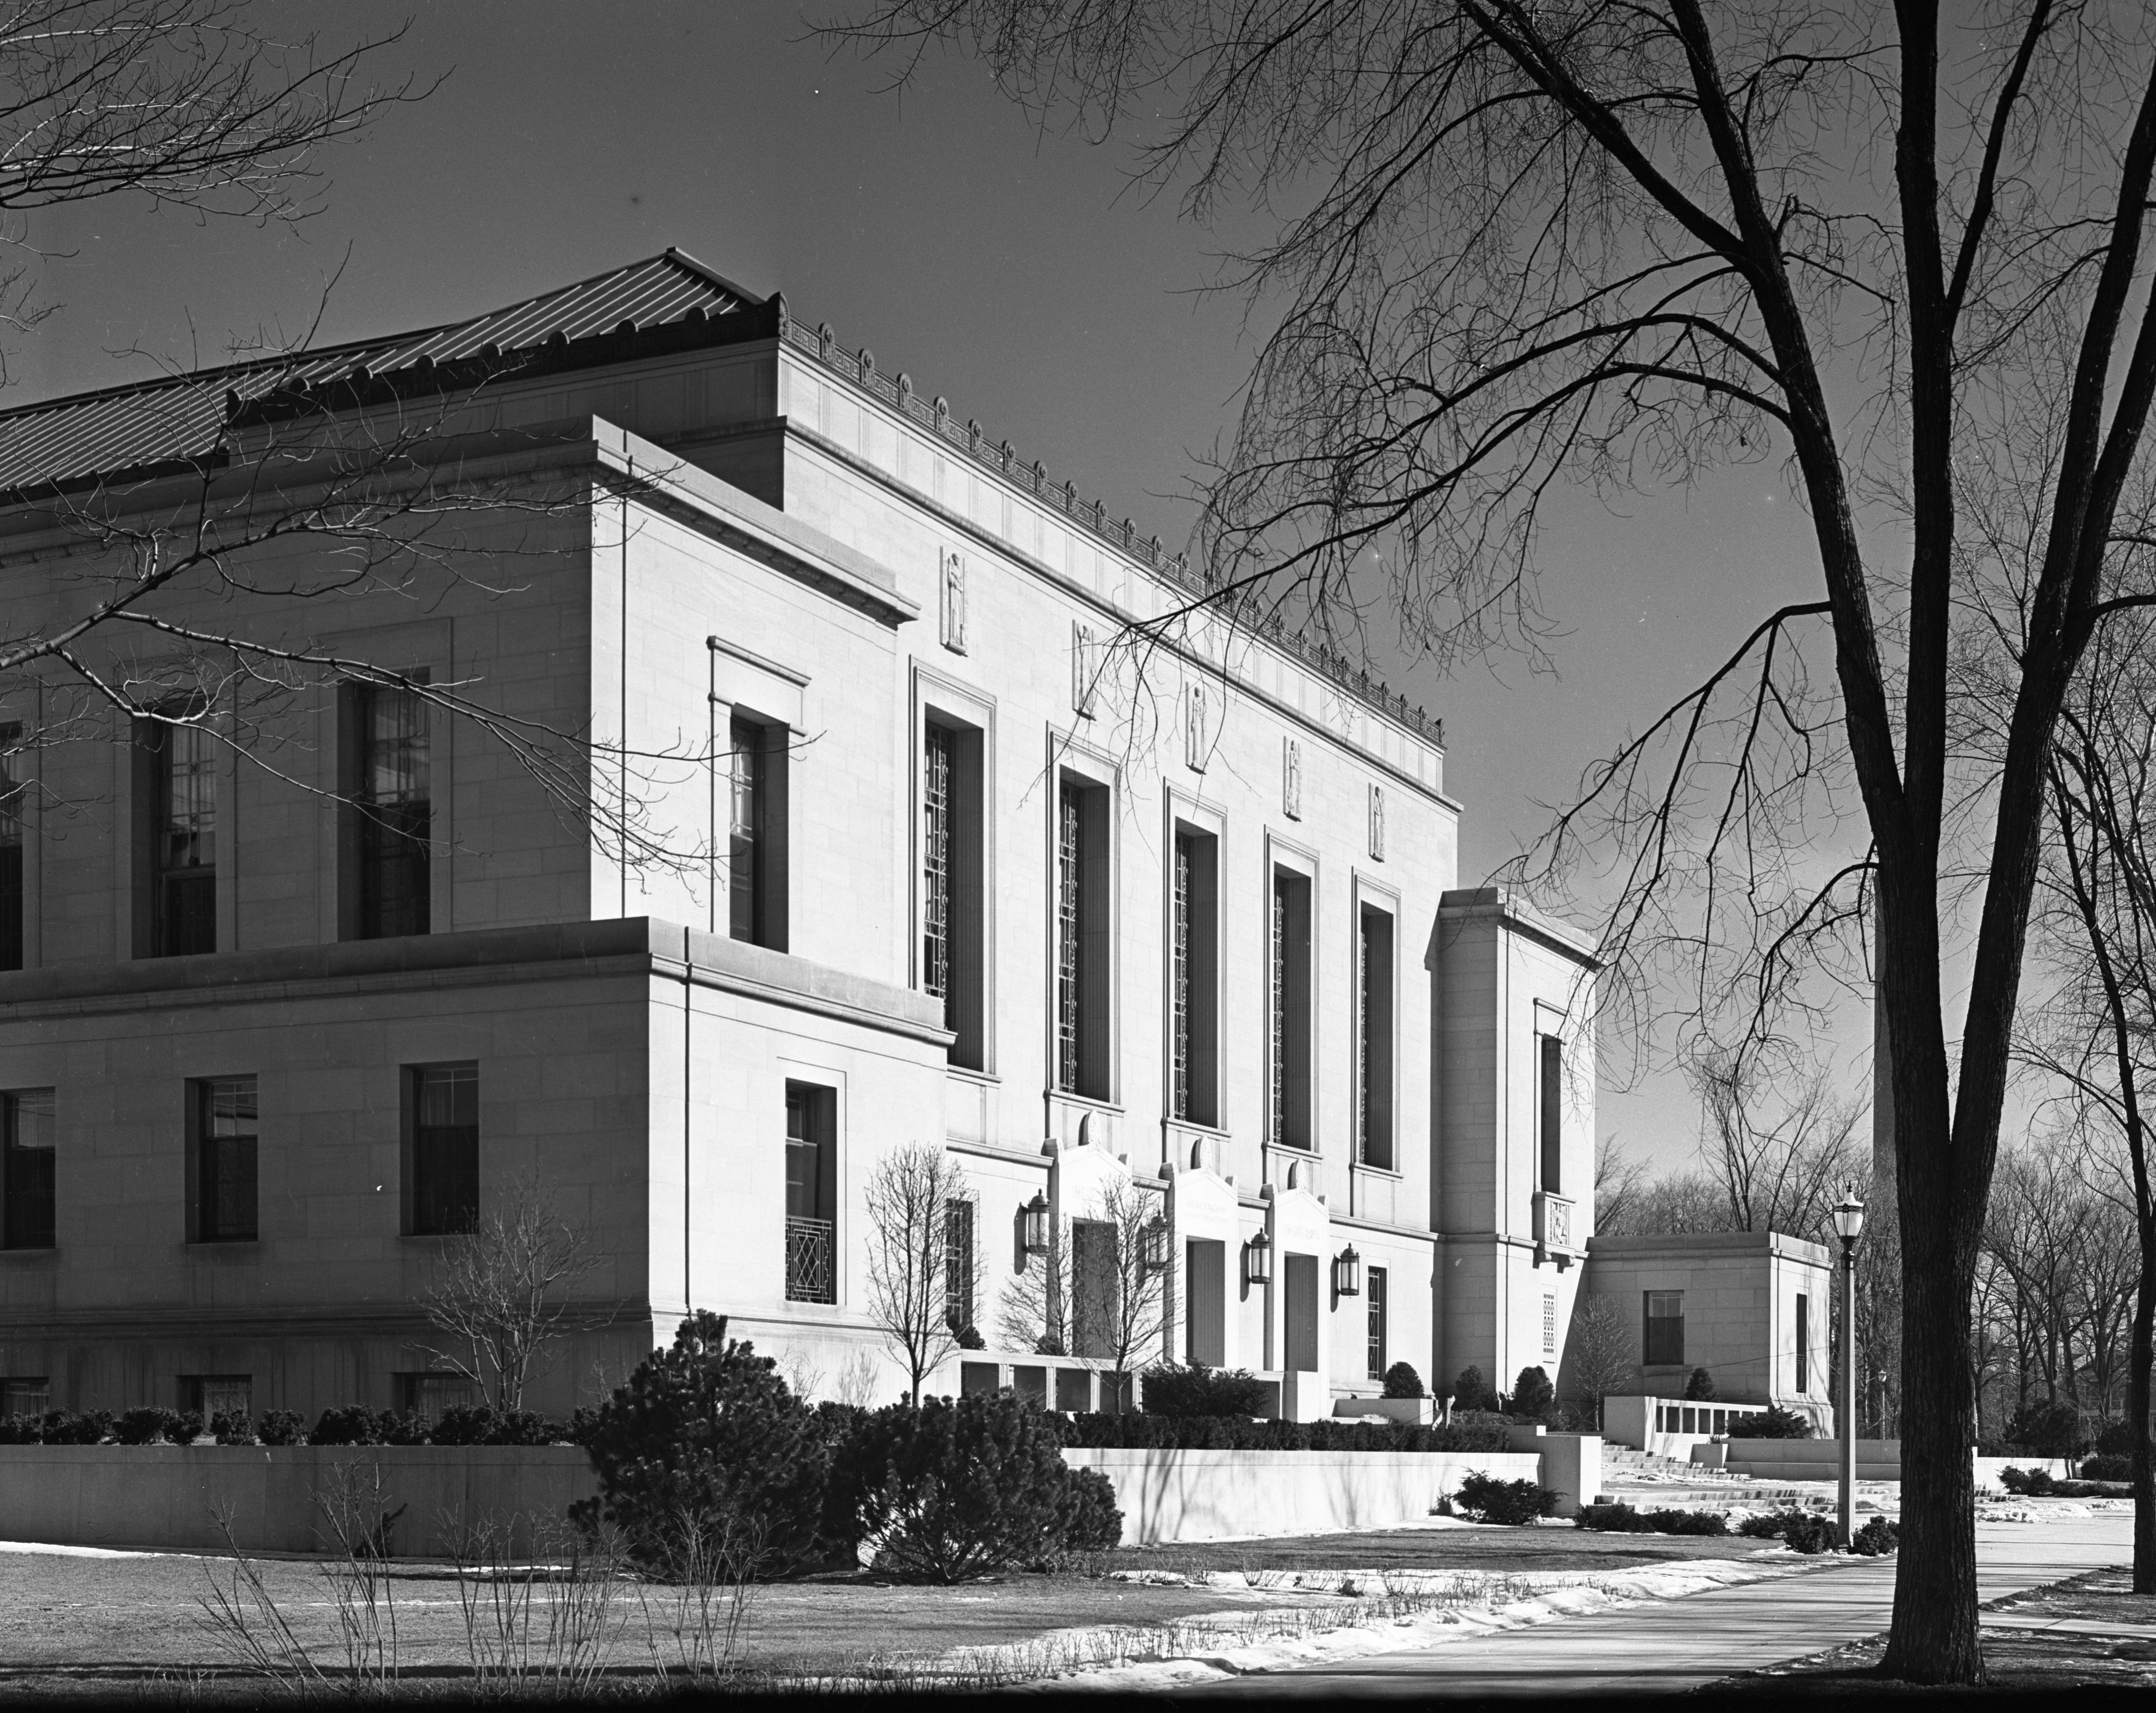 Rackham School facade, March 1939 image